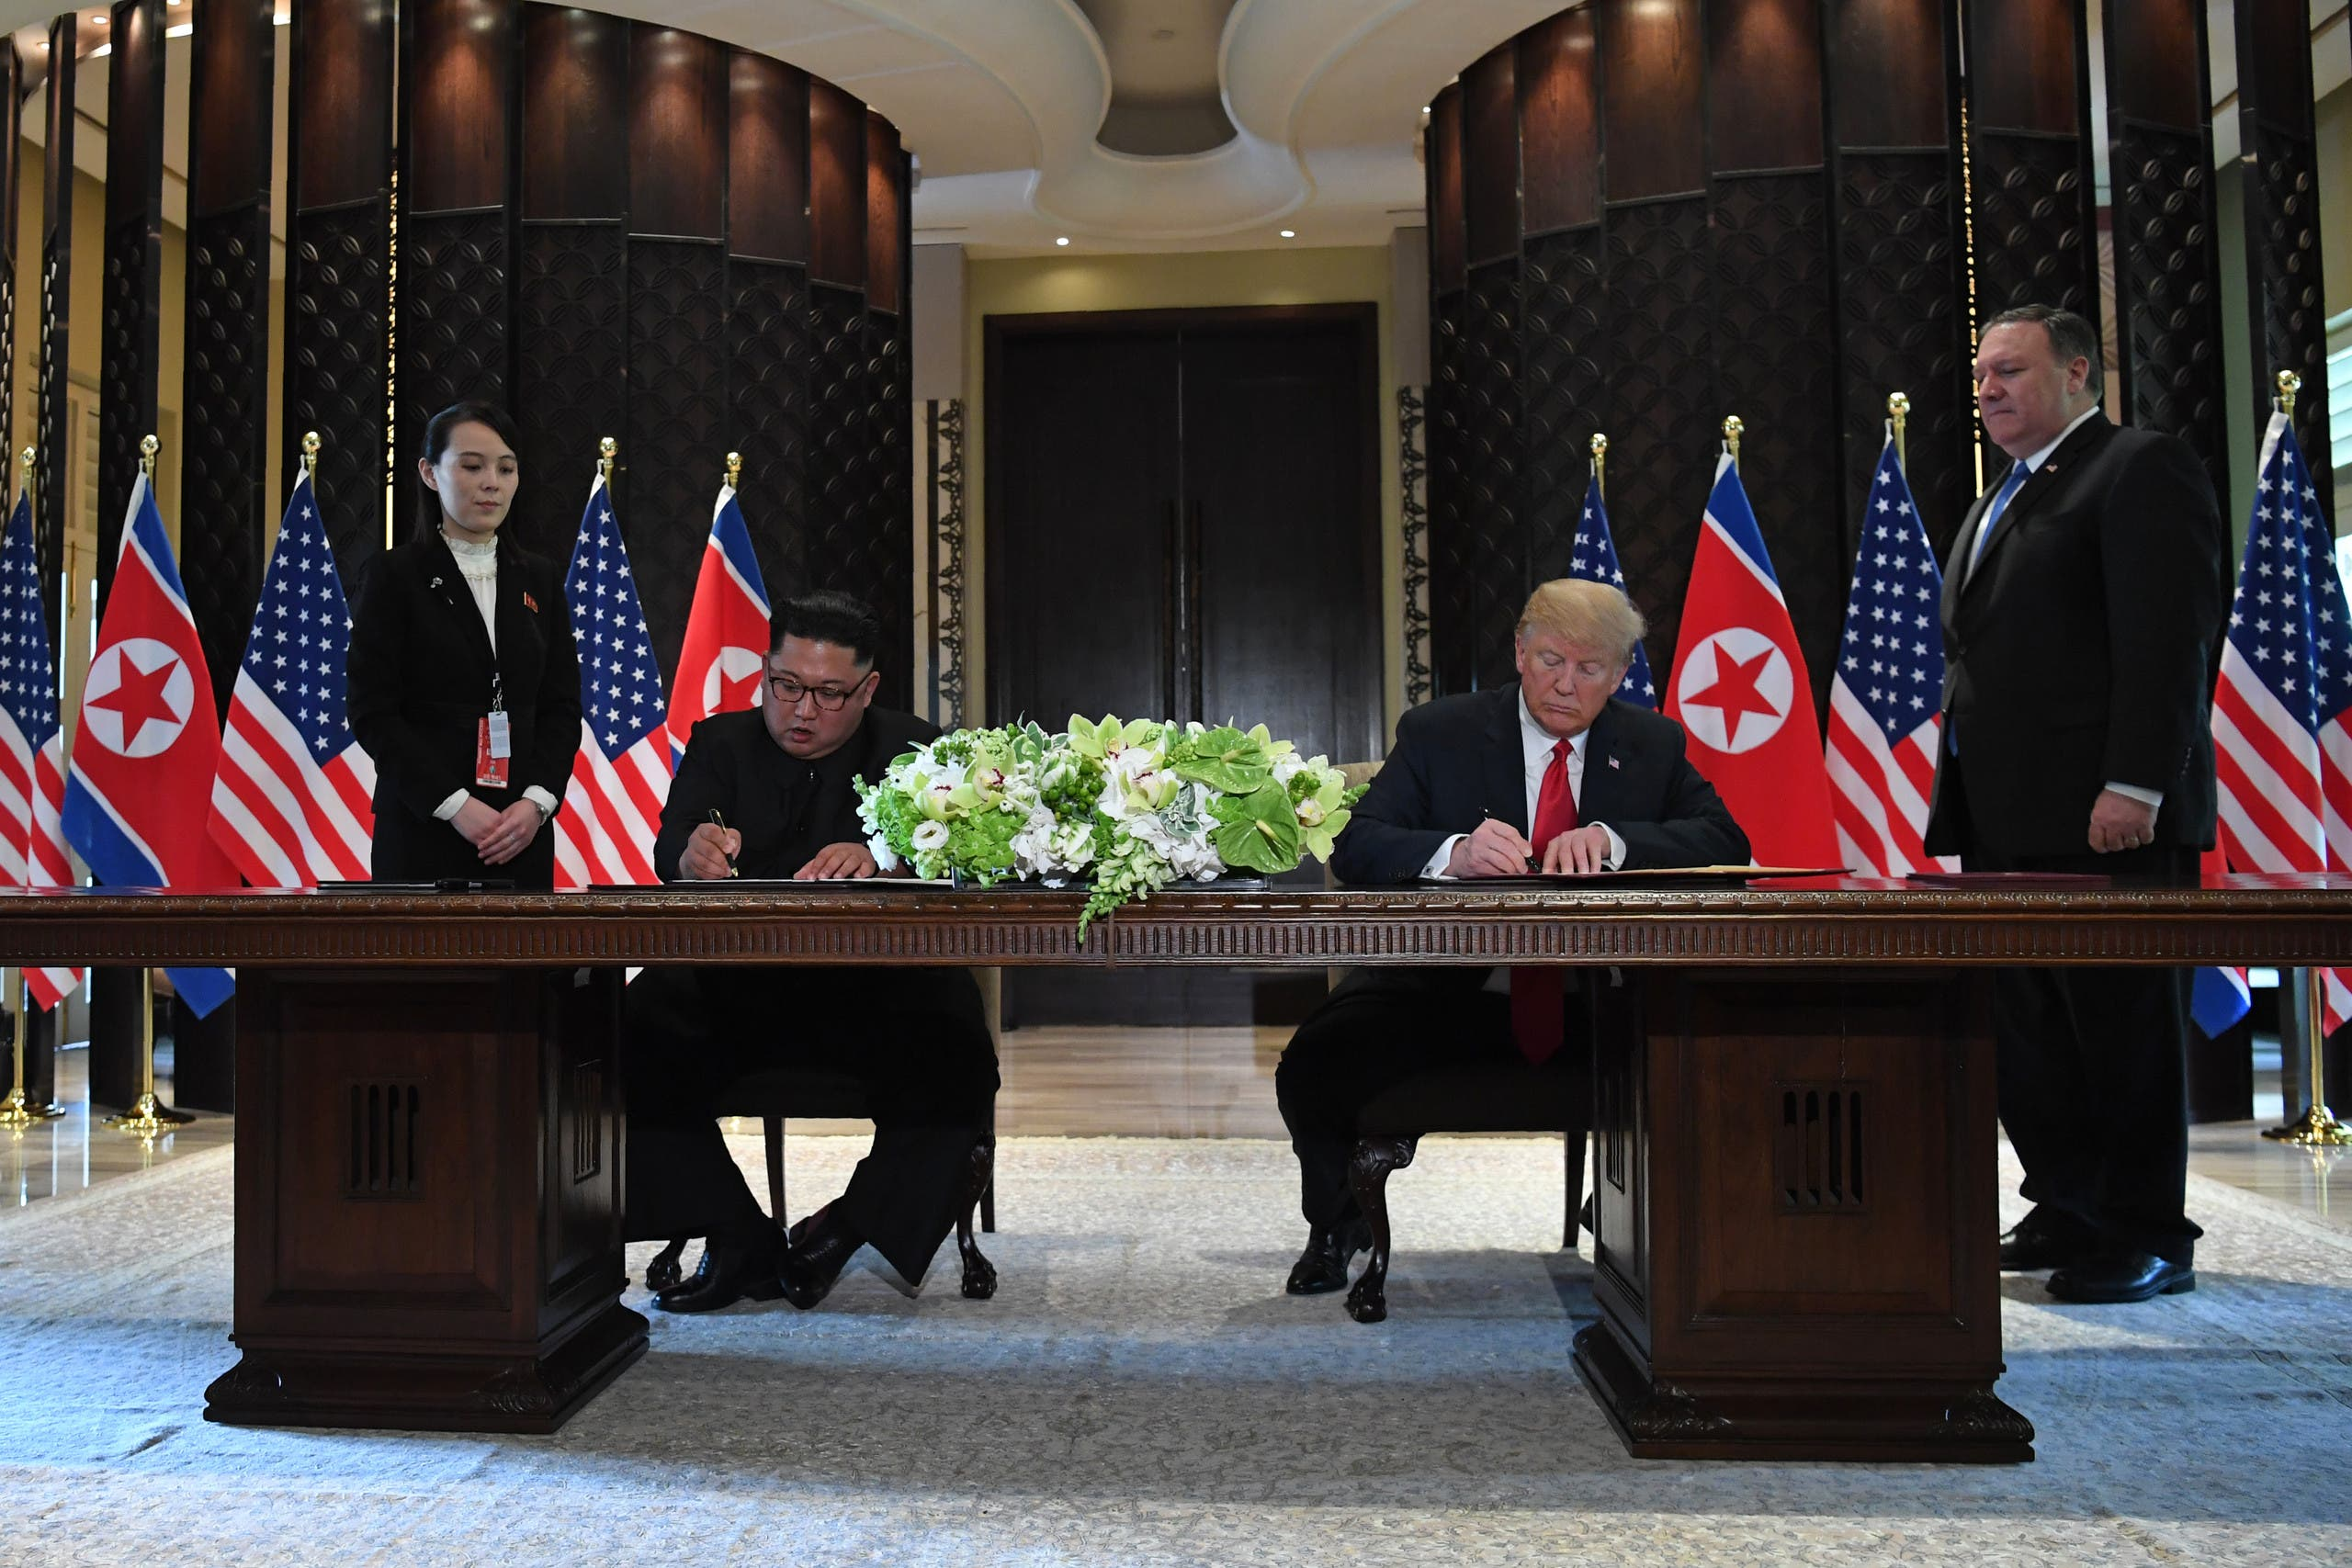 US President Donald Trump (2nd R) and North Korea's leader Kim Jong Un (2nd L) sign documents as US Secretary of State Mike Pompeo (R) and the North Korean leader's sister Kim Yo Jong (L) look on at a signing ceremony during their historic US-North Korea summit, at the Capella Hotel on Sentosa island in Singapore on June 12, 2018. (AFP)